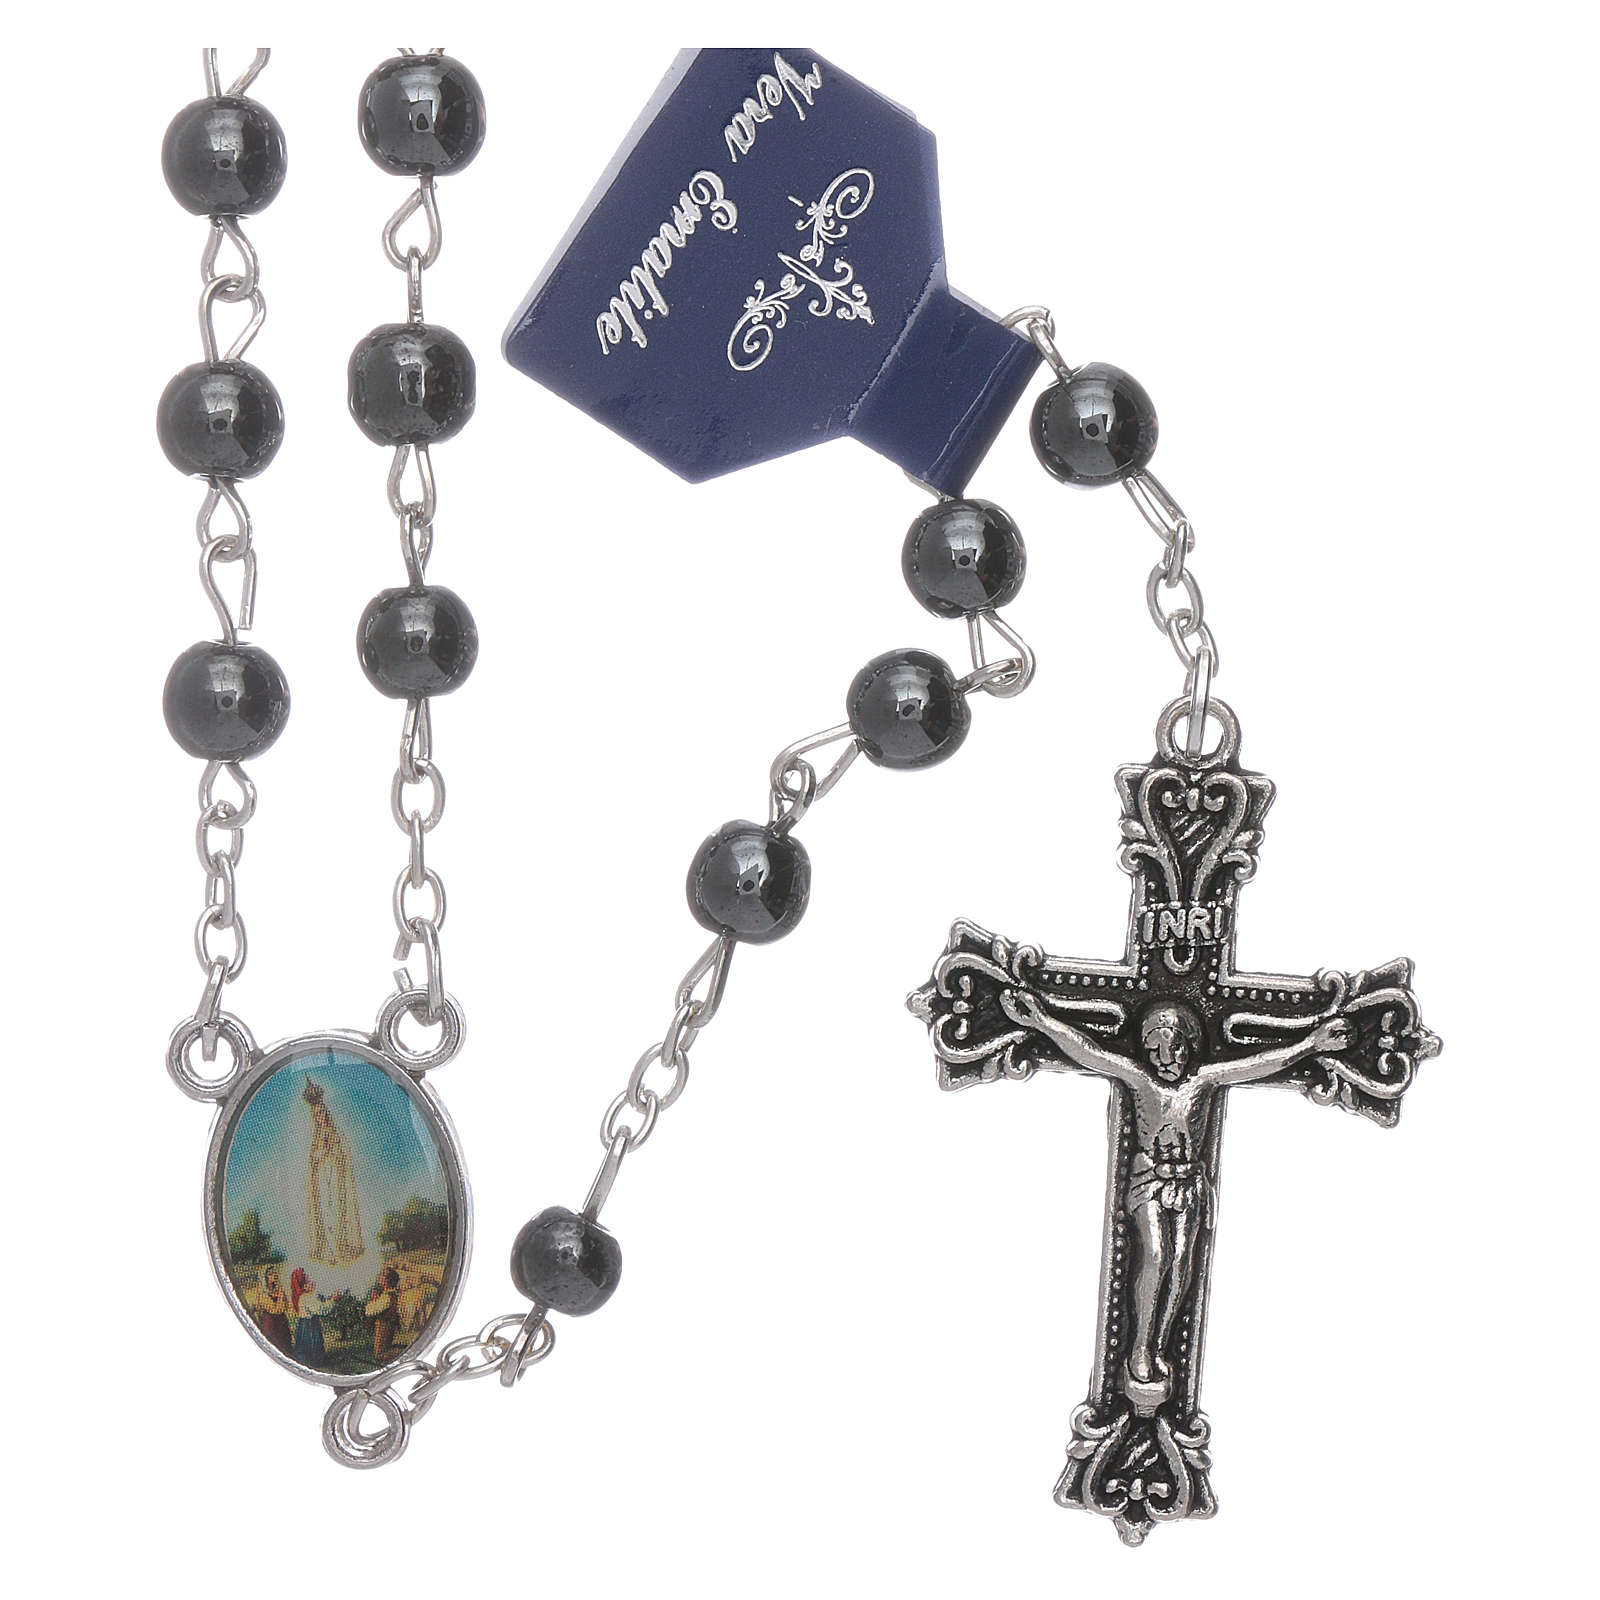 Our Lady of Fatima rosary hematite 6mm beads 4